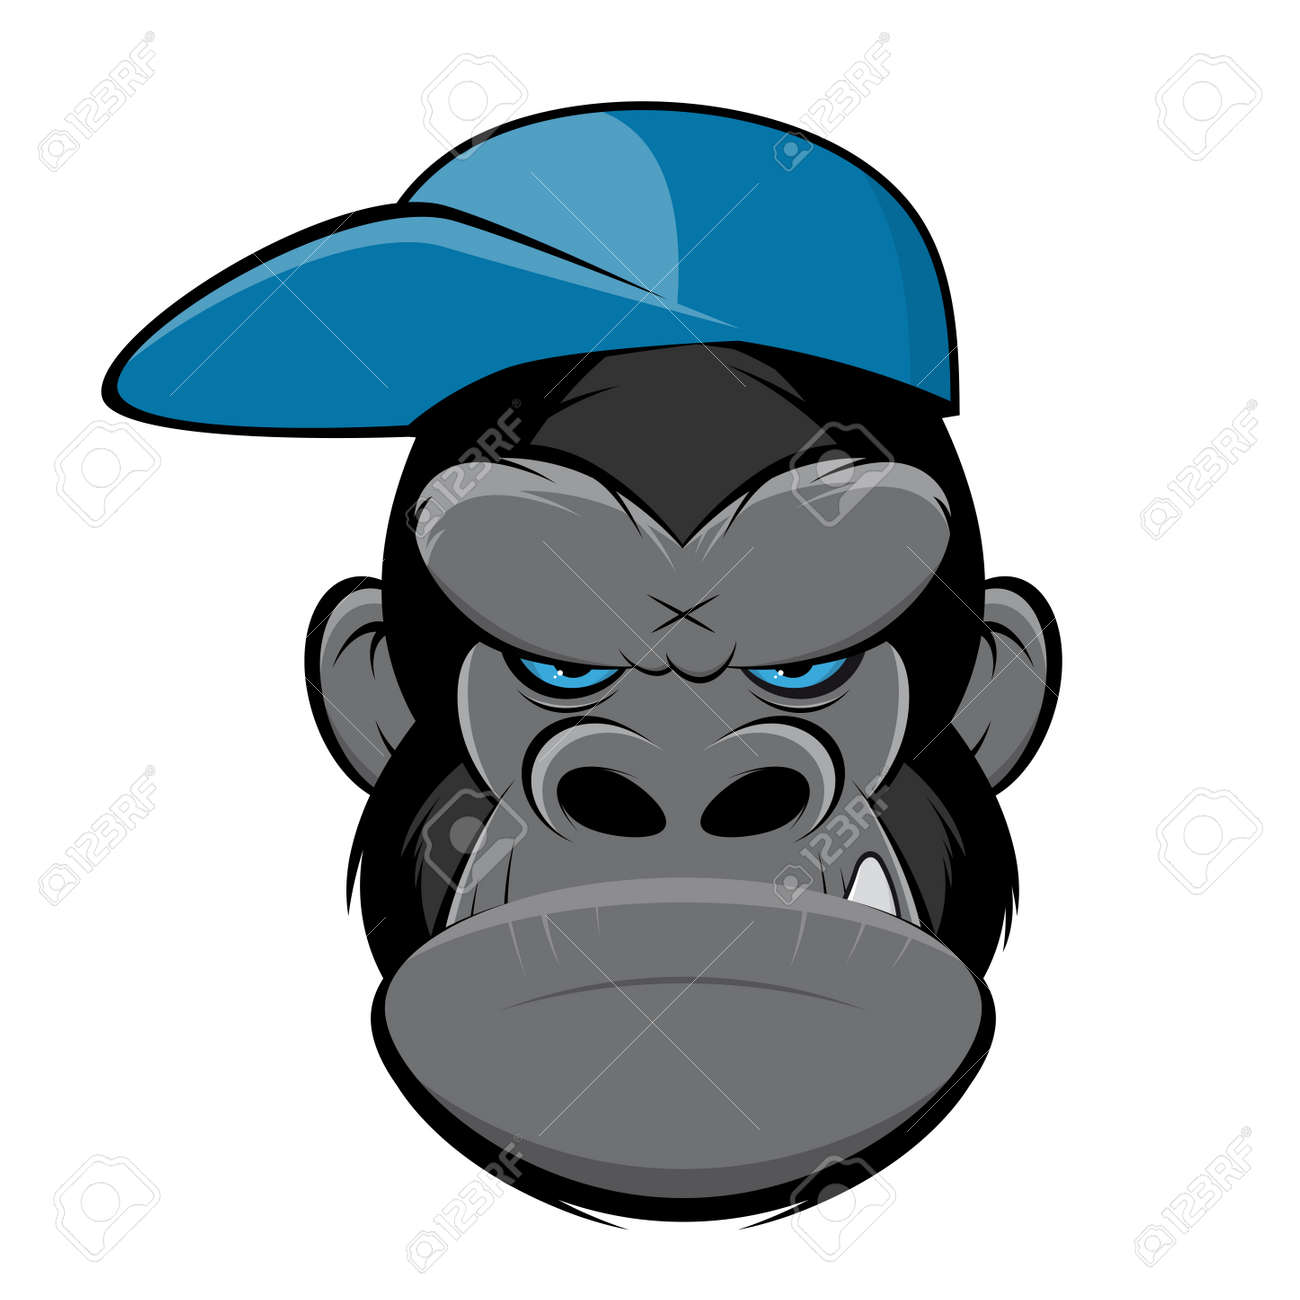 Angry gorilla with a cap Standard-Bild - 84561839